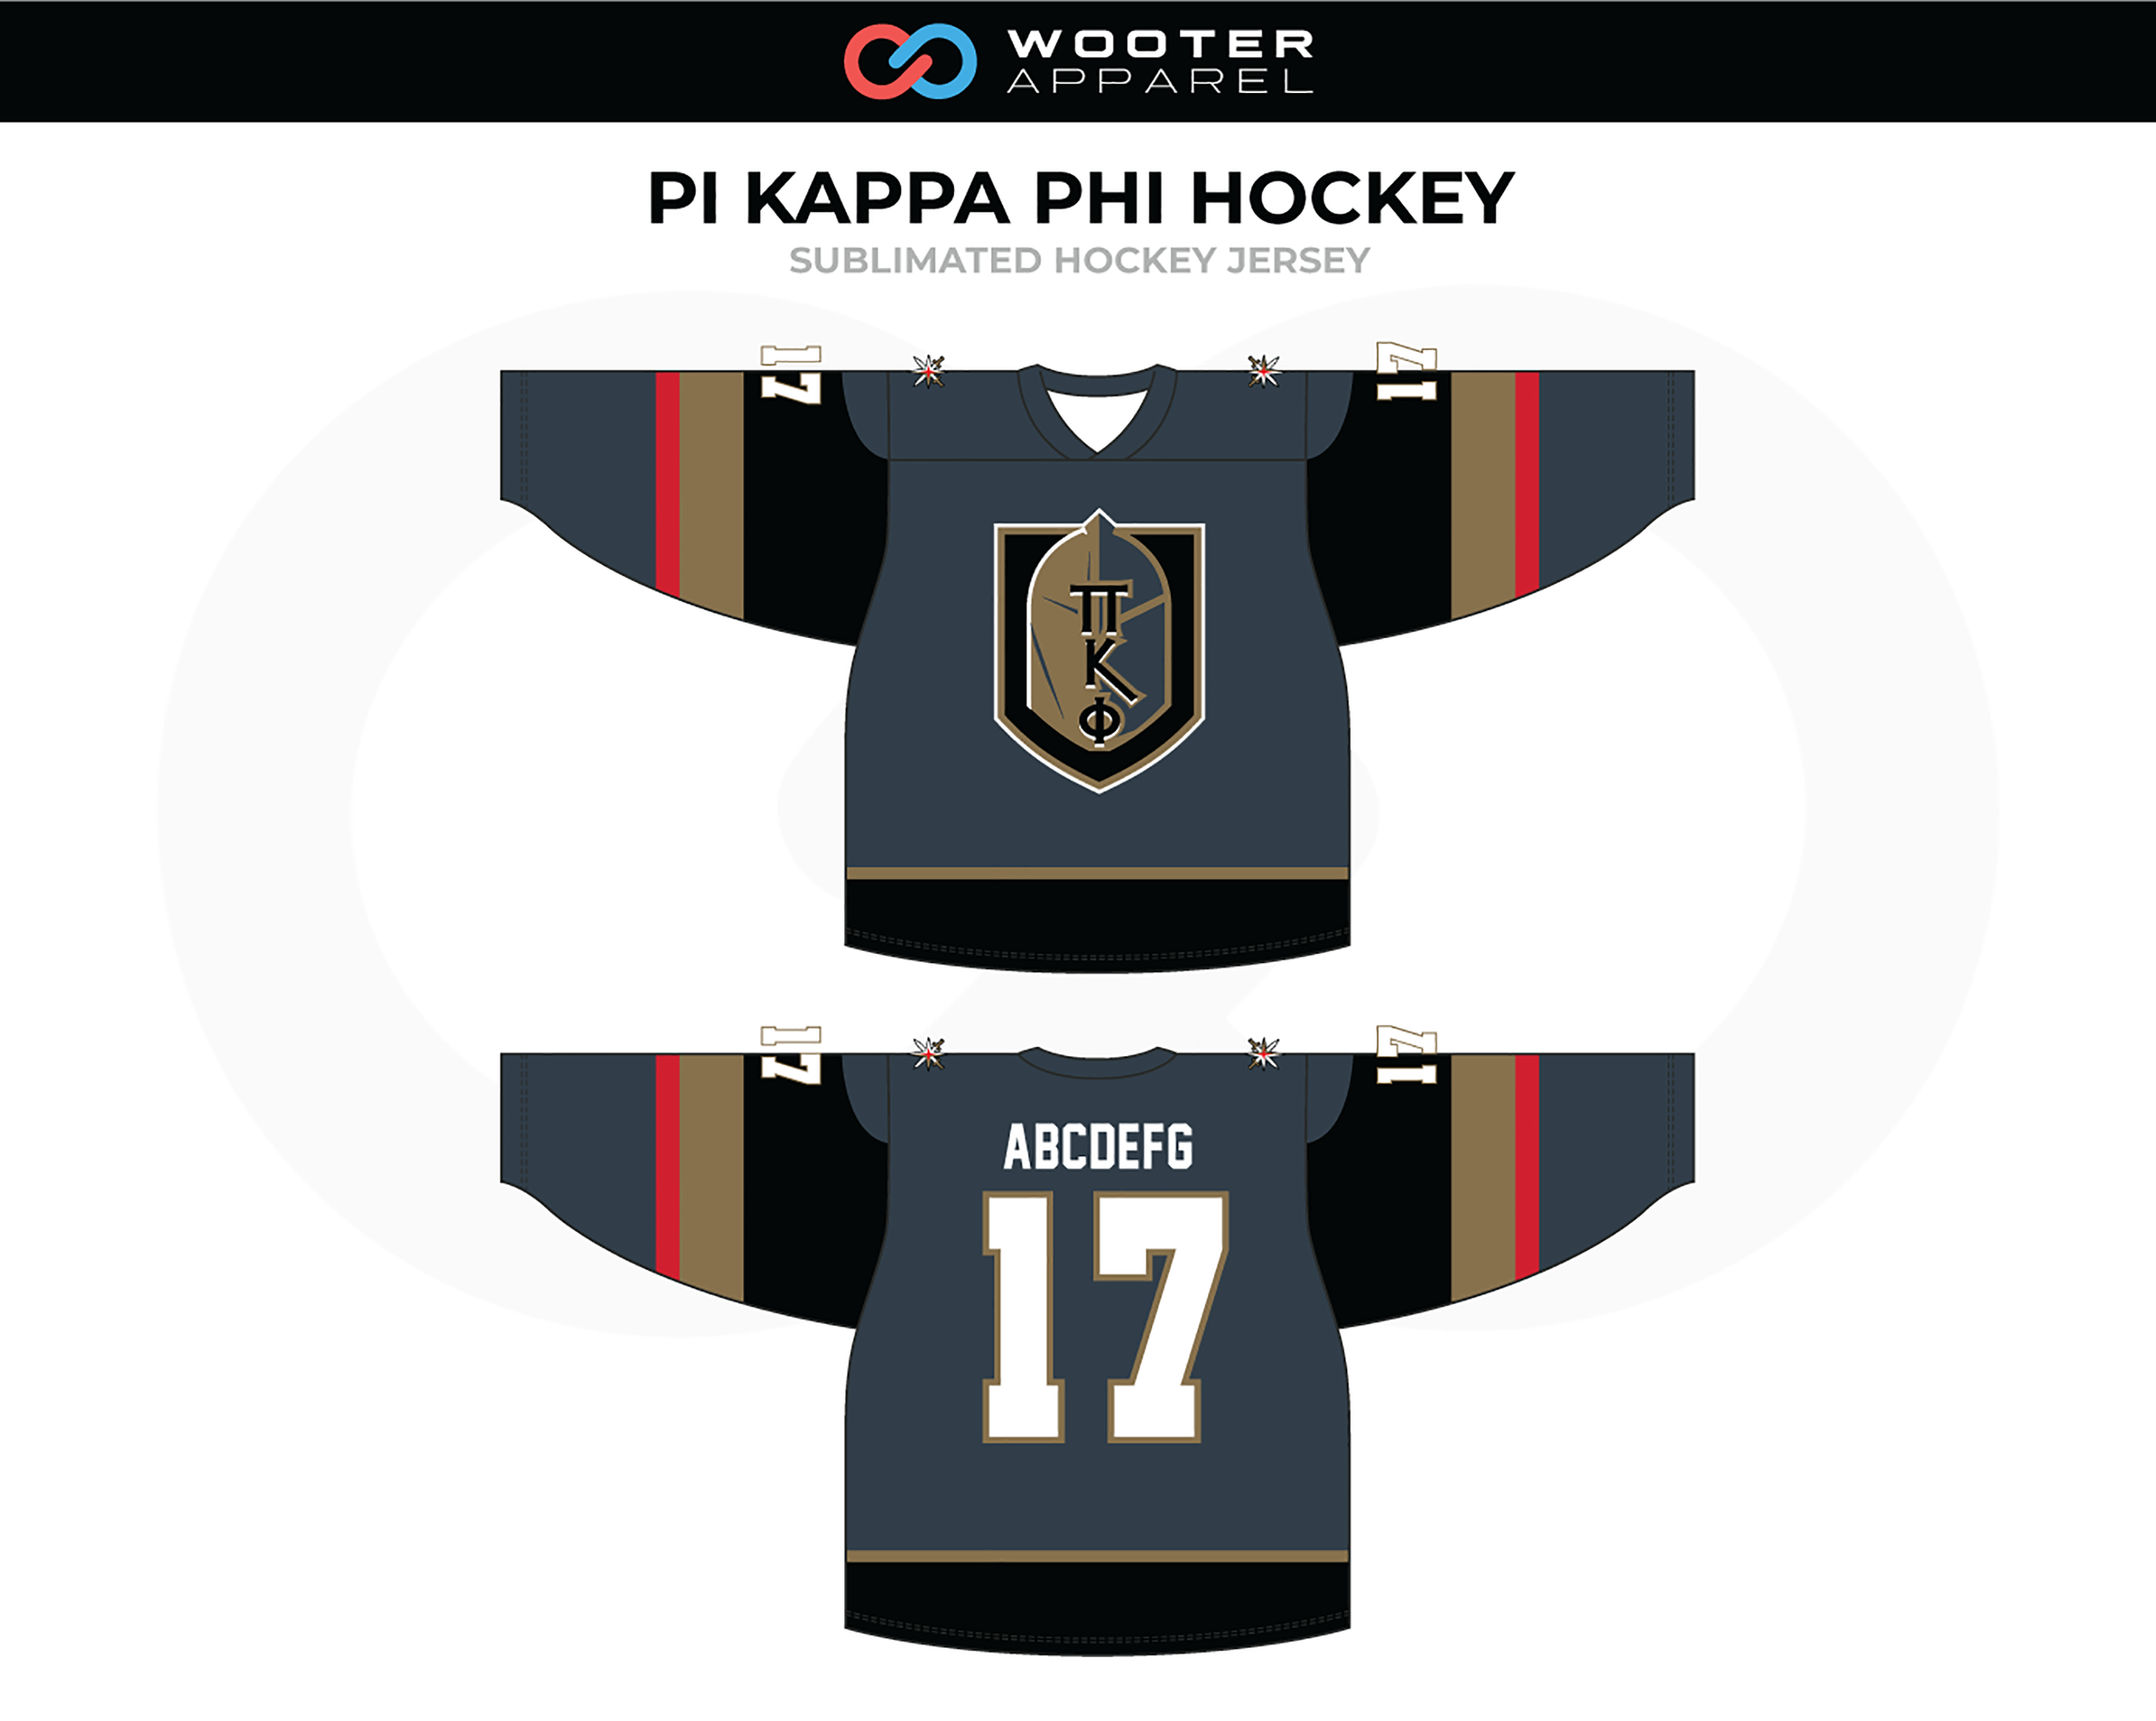 PI KAPPA PHI Gray Black Beige Red Hockey Jersey